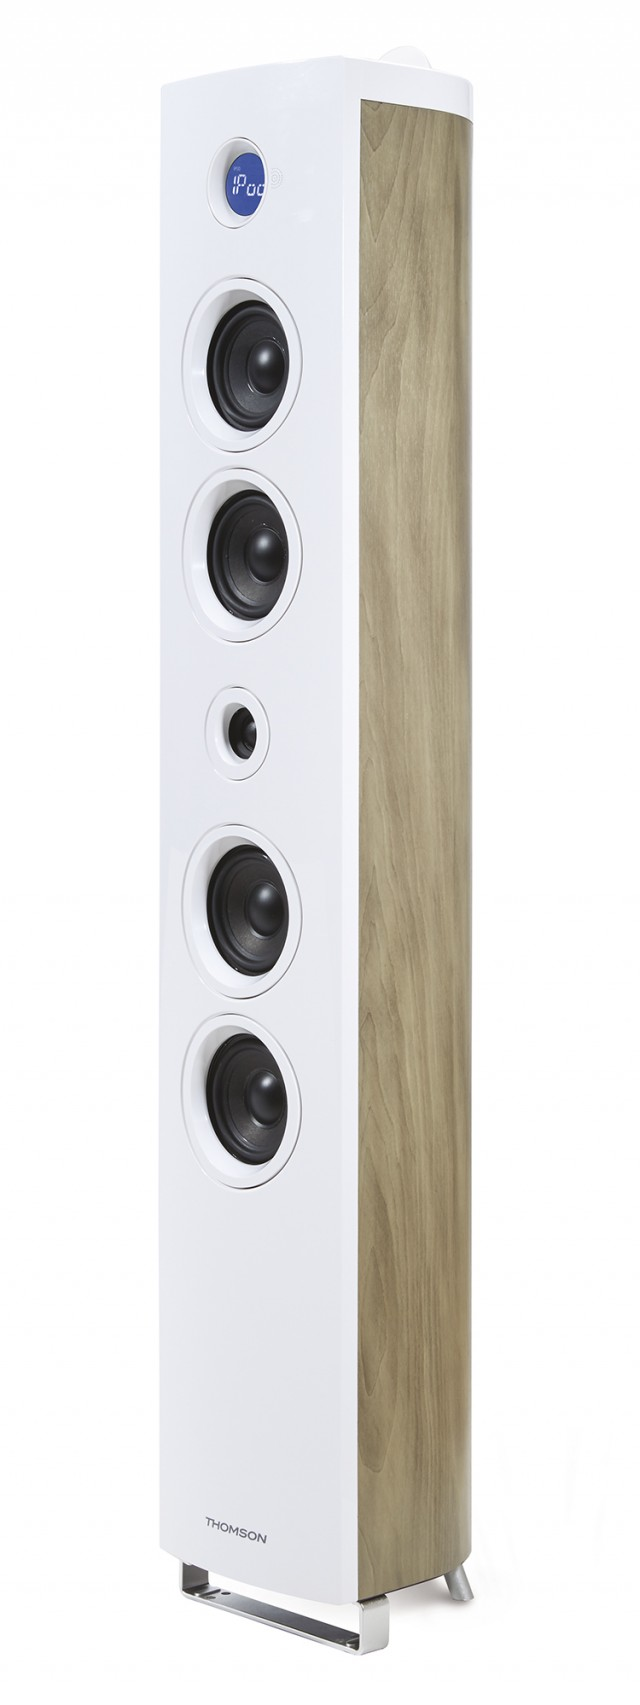 Multimedia Tower 'Wood' (White) - Packshot